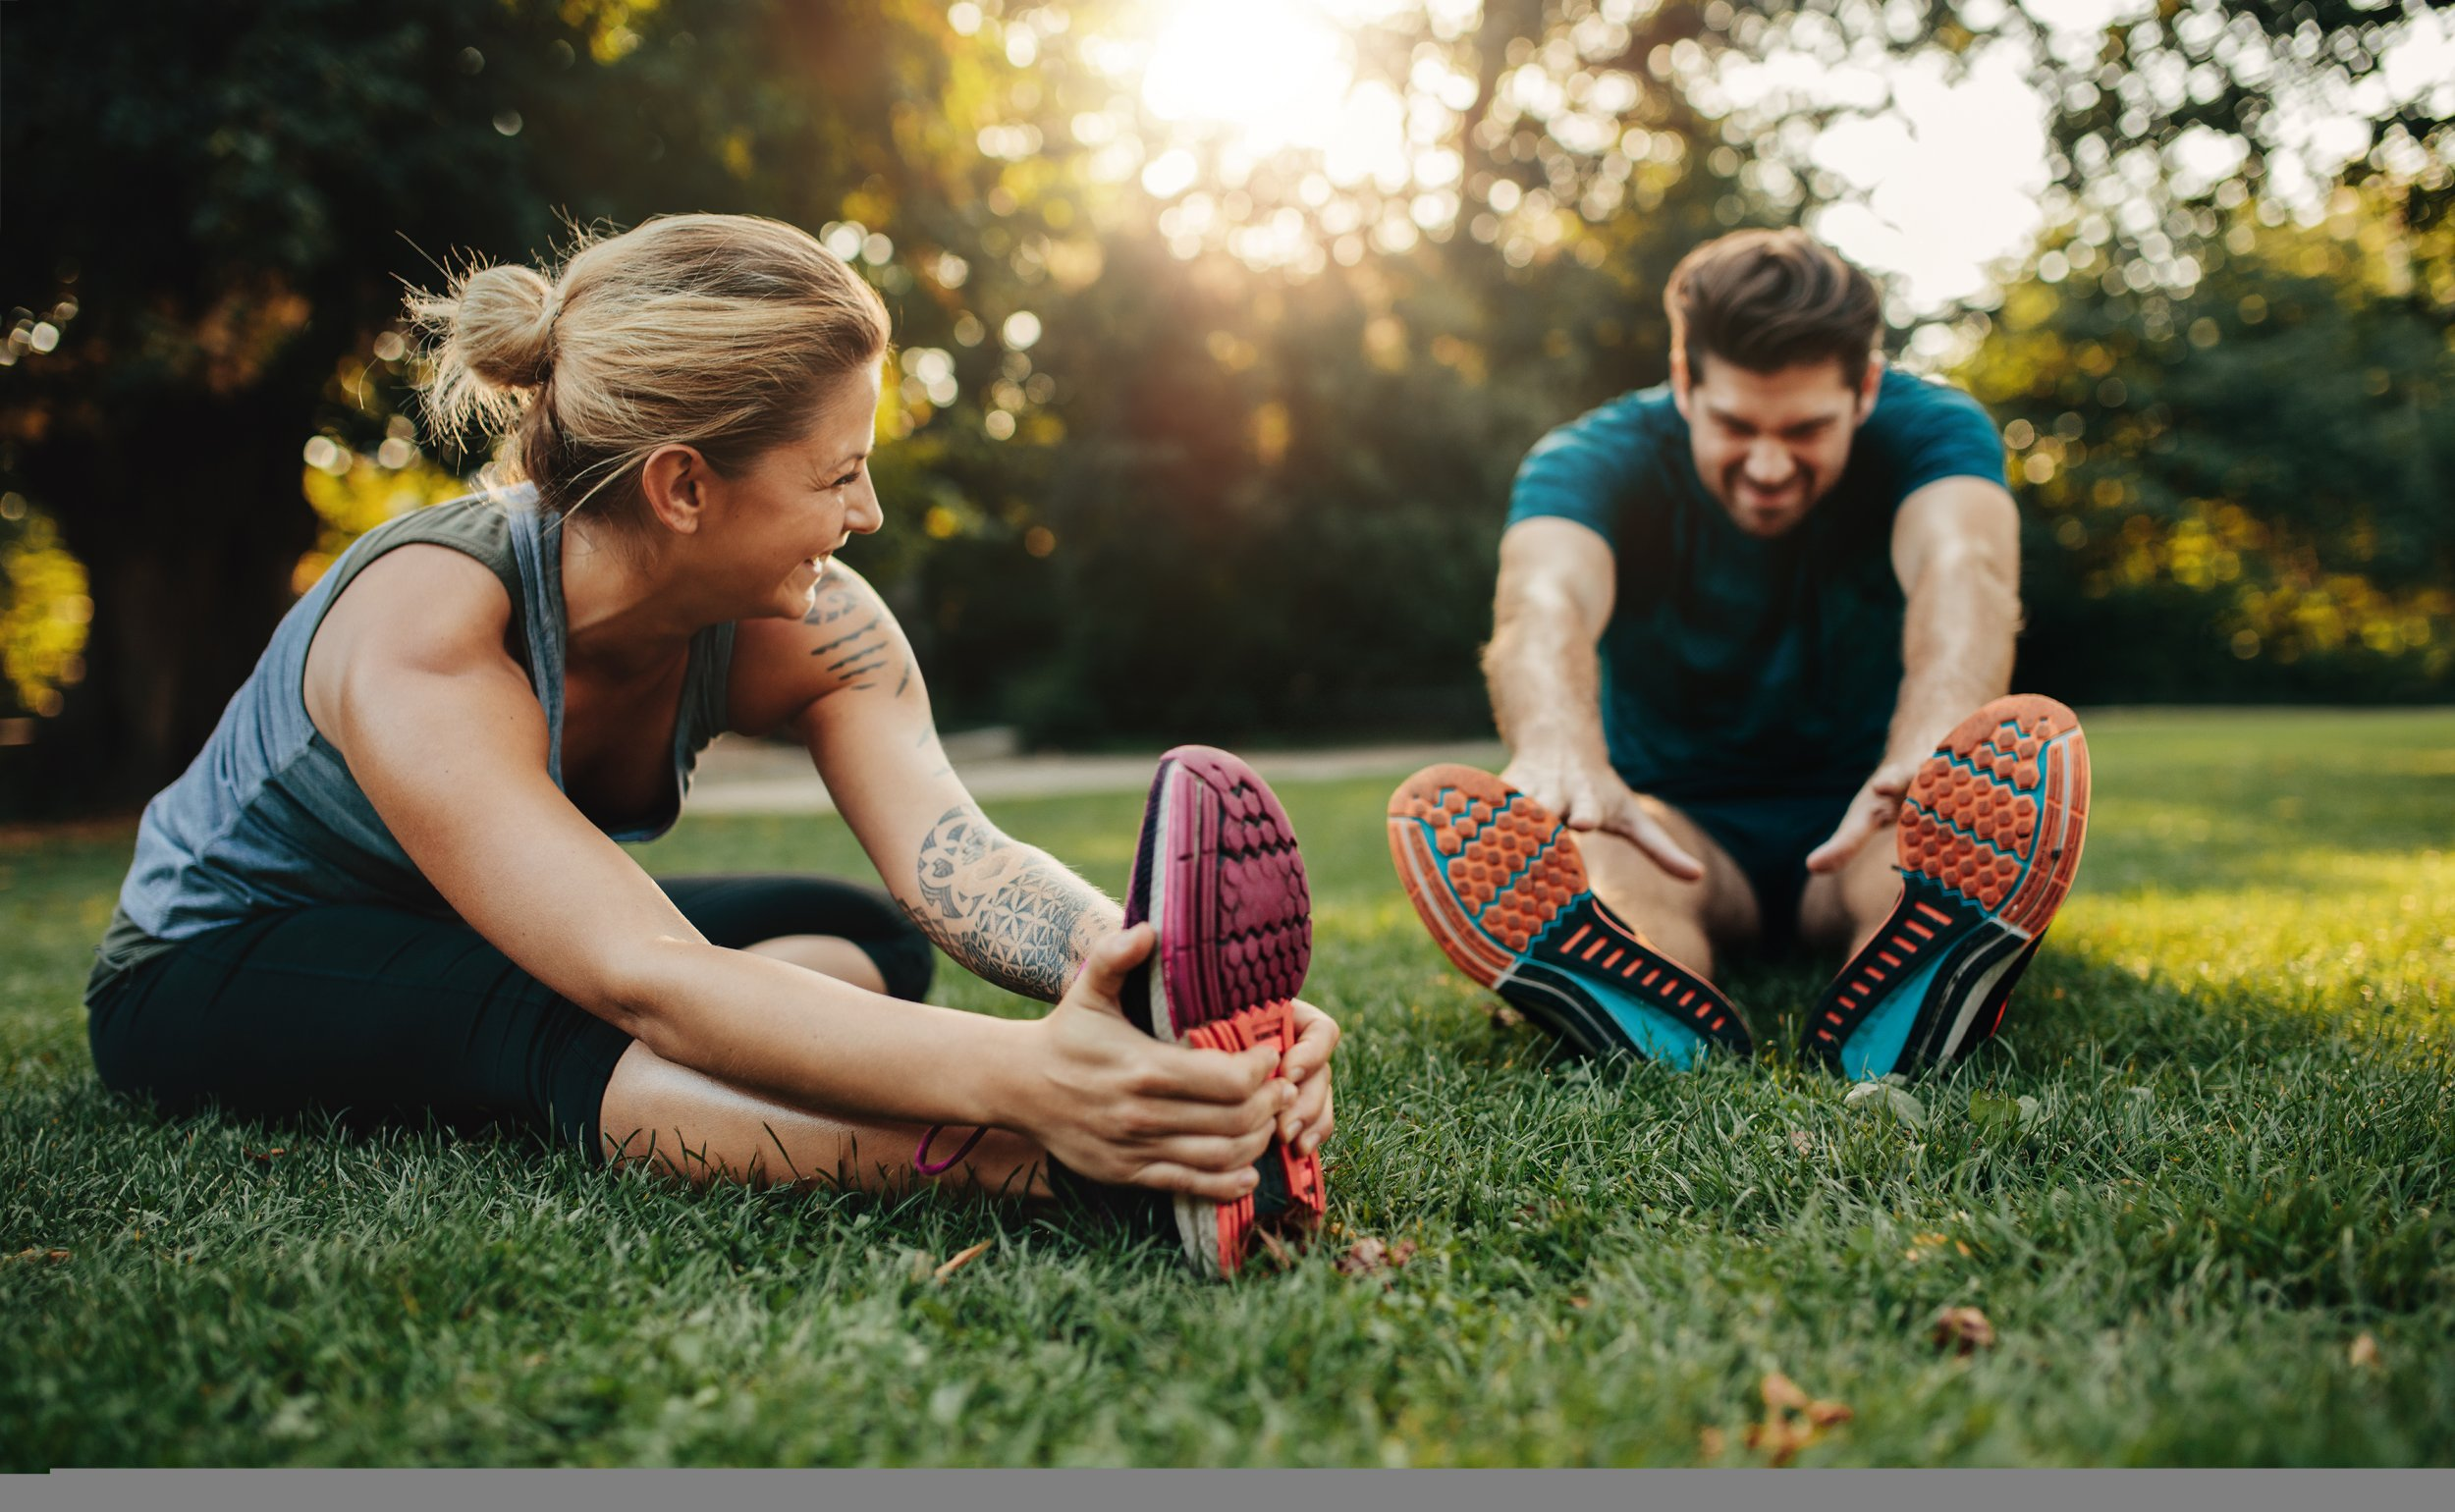 exercise physical activity getty stock